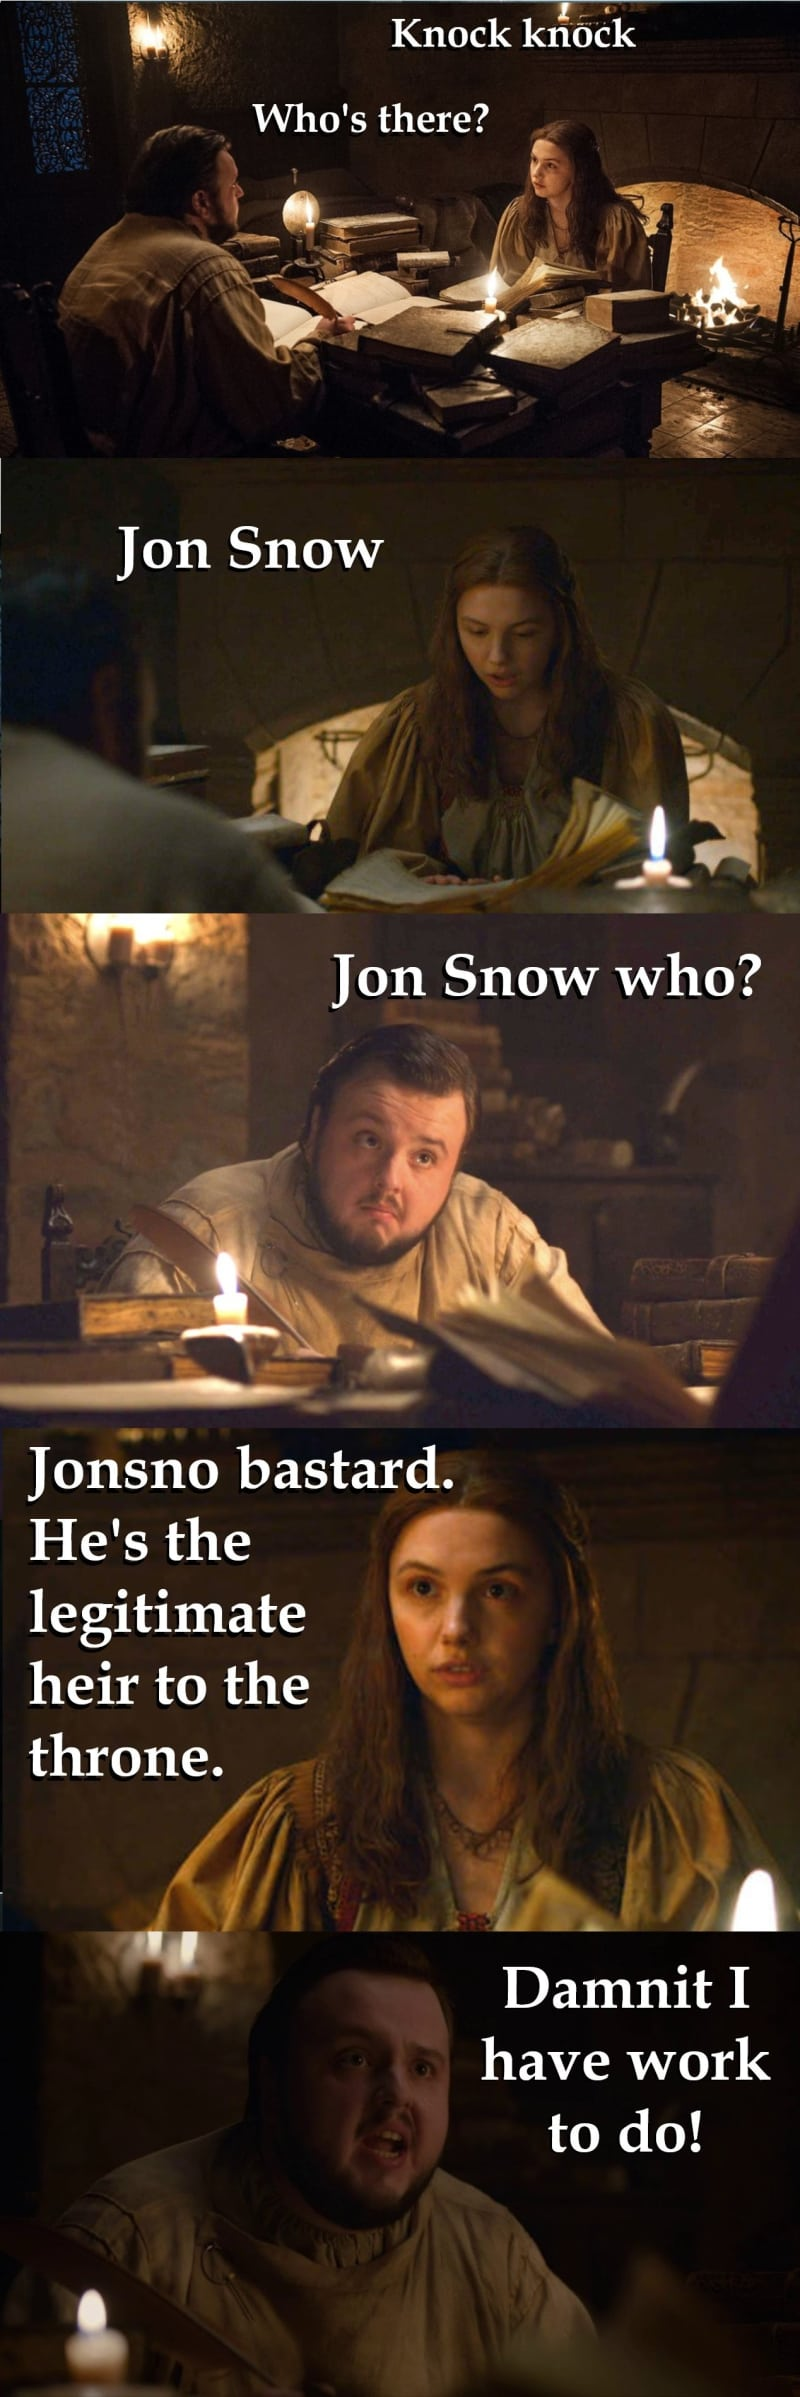 100 game of thrones season 7 memes thatll make you piss yourself 100 game of thrones season 7 memes thatll make you piss yourself laughing solutioingenieria Gallery